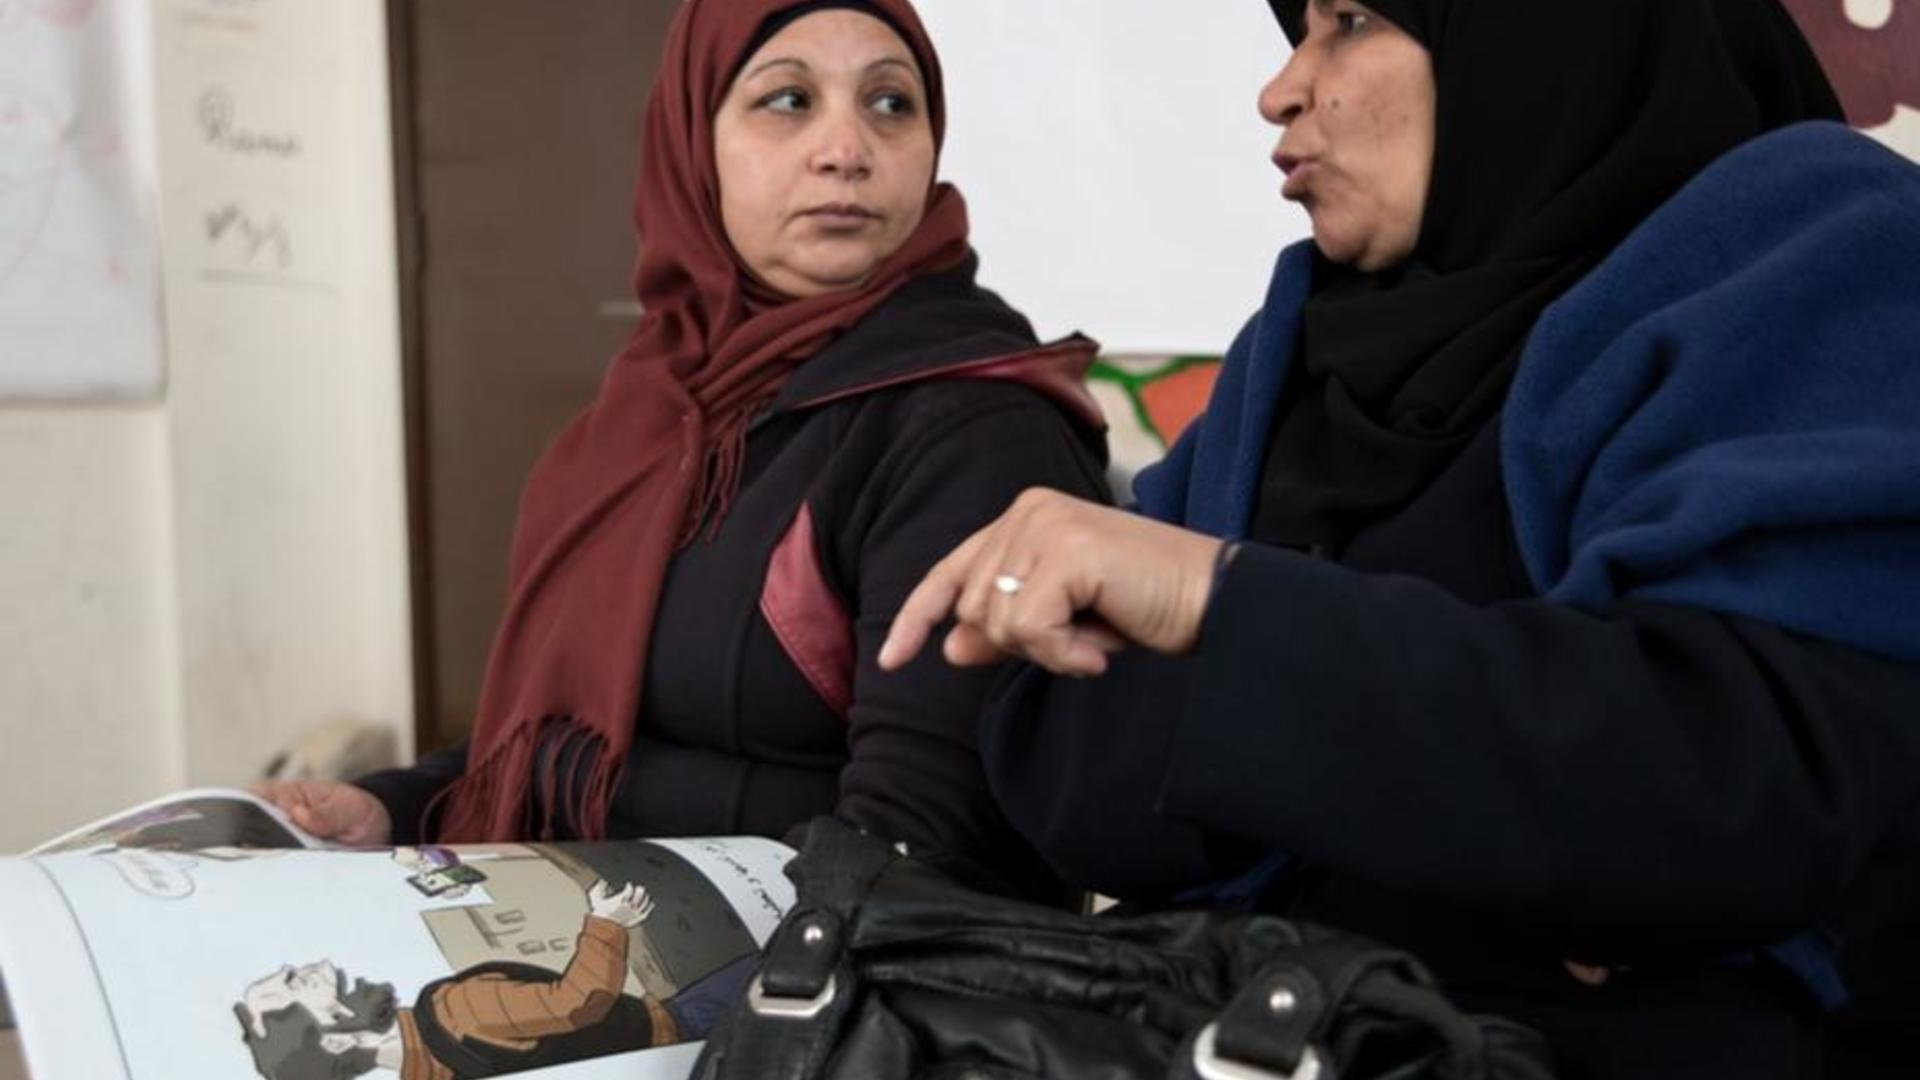 Syrian women look at an IRC-created comic book and discuss decisions the main character makes